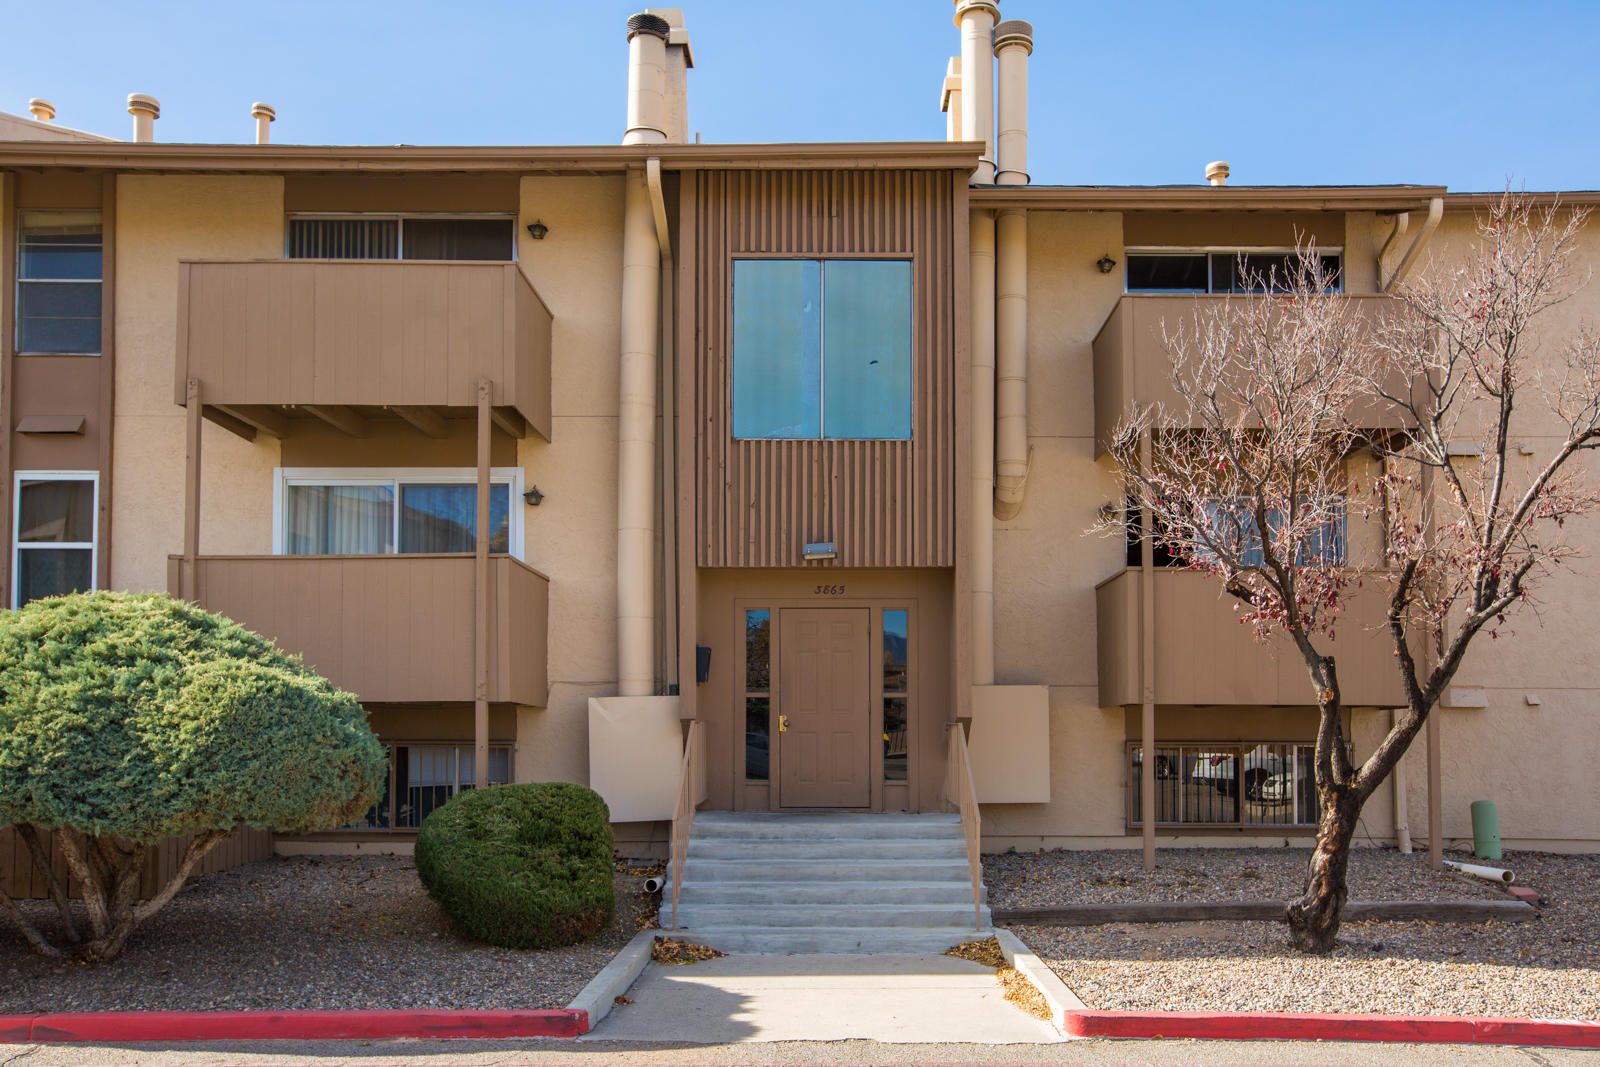 Welcome Home to this Bright, Beautiful, Single-Level, Ground-Floor Condo with 2 Spacious Bedrooms, Walk-in Closets, Tile + Newer Laminate Flooring throughout! No Carpet. *Refrigerated Air!* Let a Cozy Wood-Burning Fireplace be your Living Room's Focal Point! HOA Covers 24-Hour Security, Pool, Hot Tub, Sauna, Gym/Equipment, Clubhouse, Playground, gas, water, sewer, and trash. Separate Storage Unit for Owner just across the hall. Gated Community. Convenient Location w/ Easy Access to Everything. Make an appointment to see this Home today!